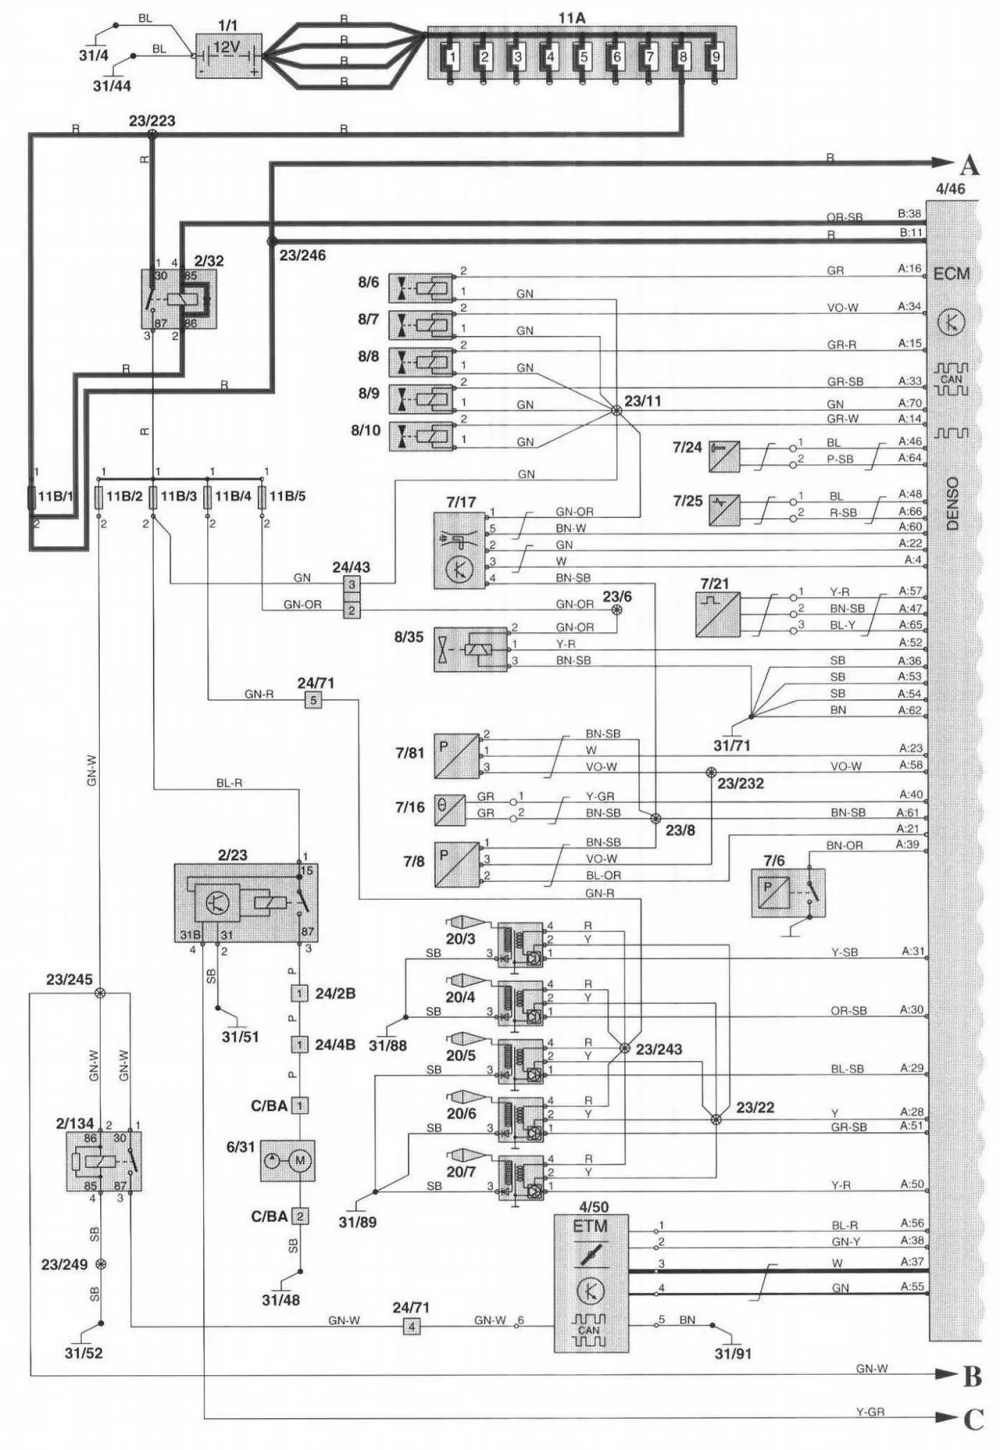 medium resolution of 2004 volvo s40 fuse diagram wiring diagram used2004 volvo s40 fuse diagram wiring diagram go 2004